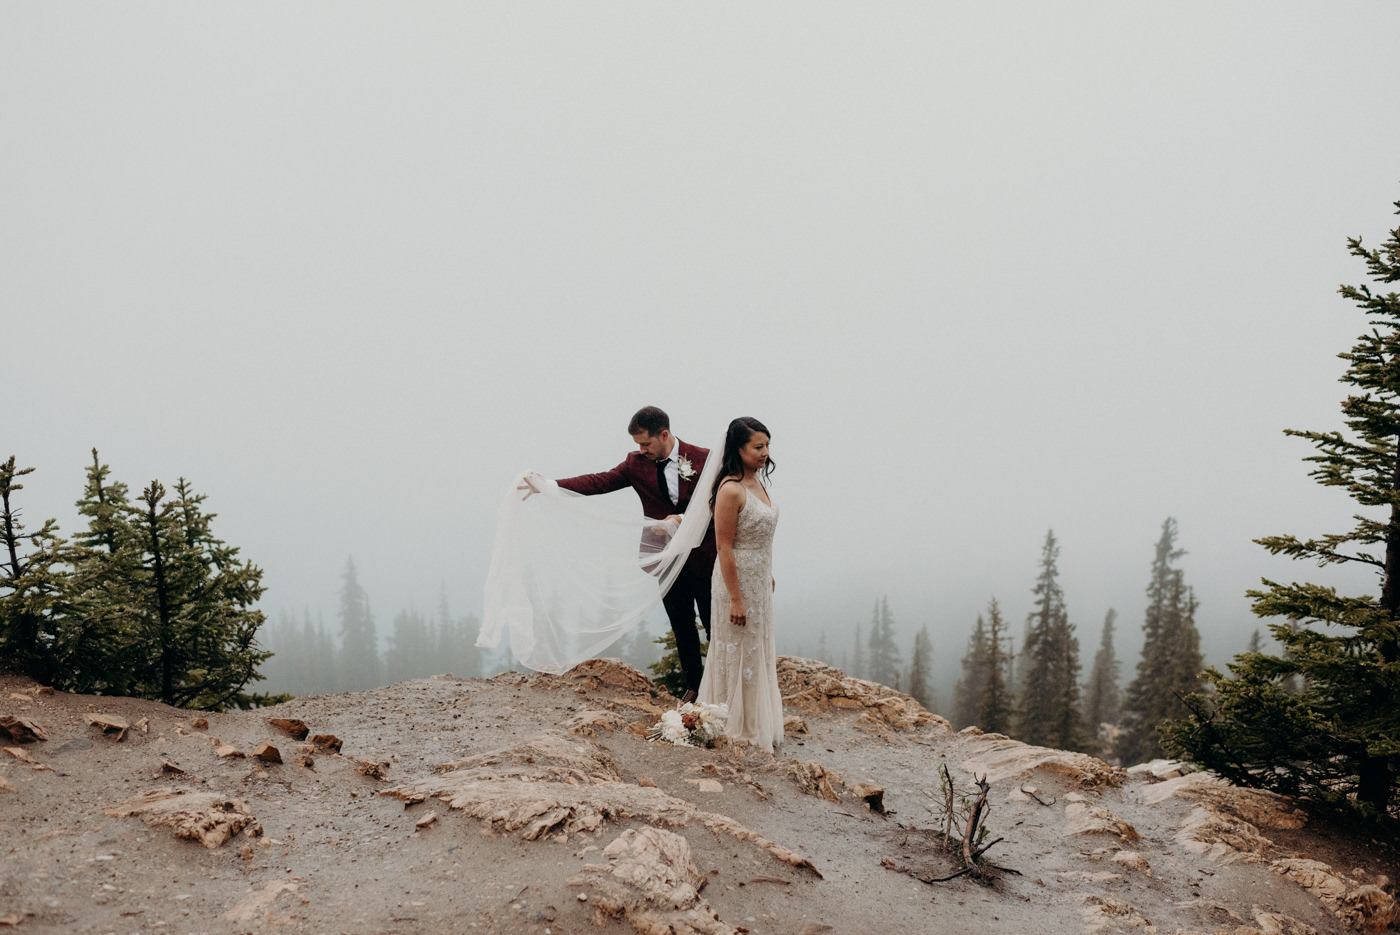 groom helping bride with veil in a foggy mountain side